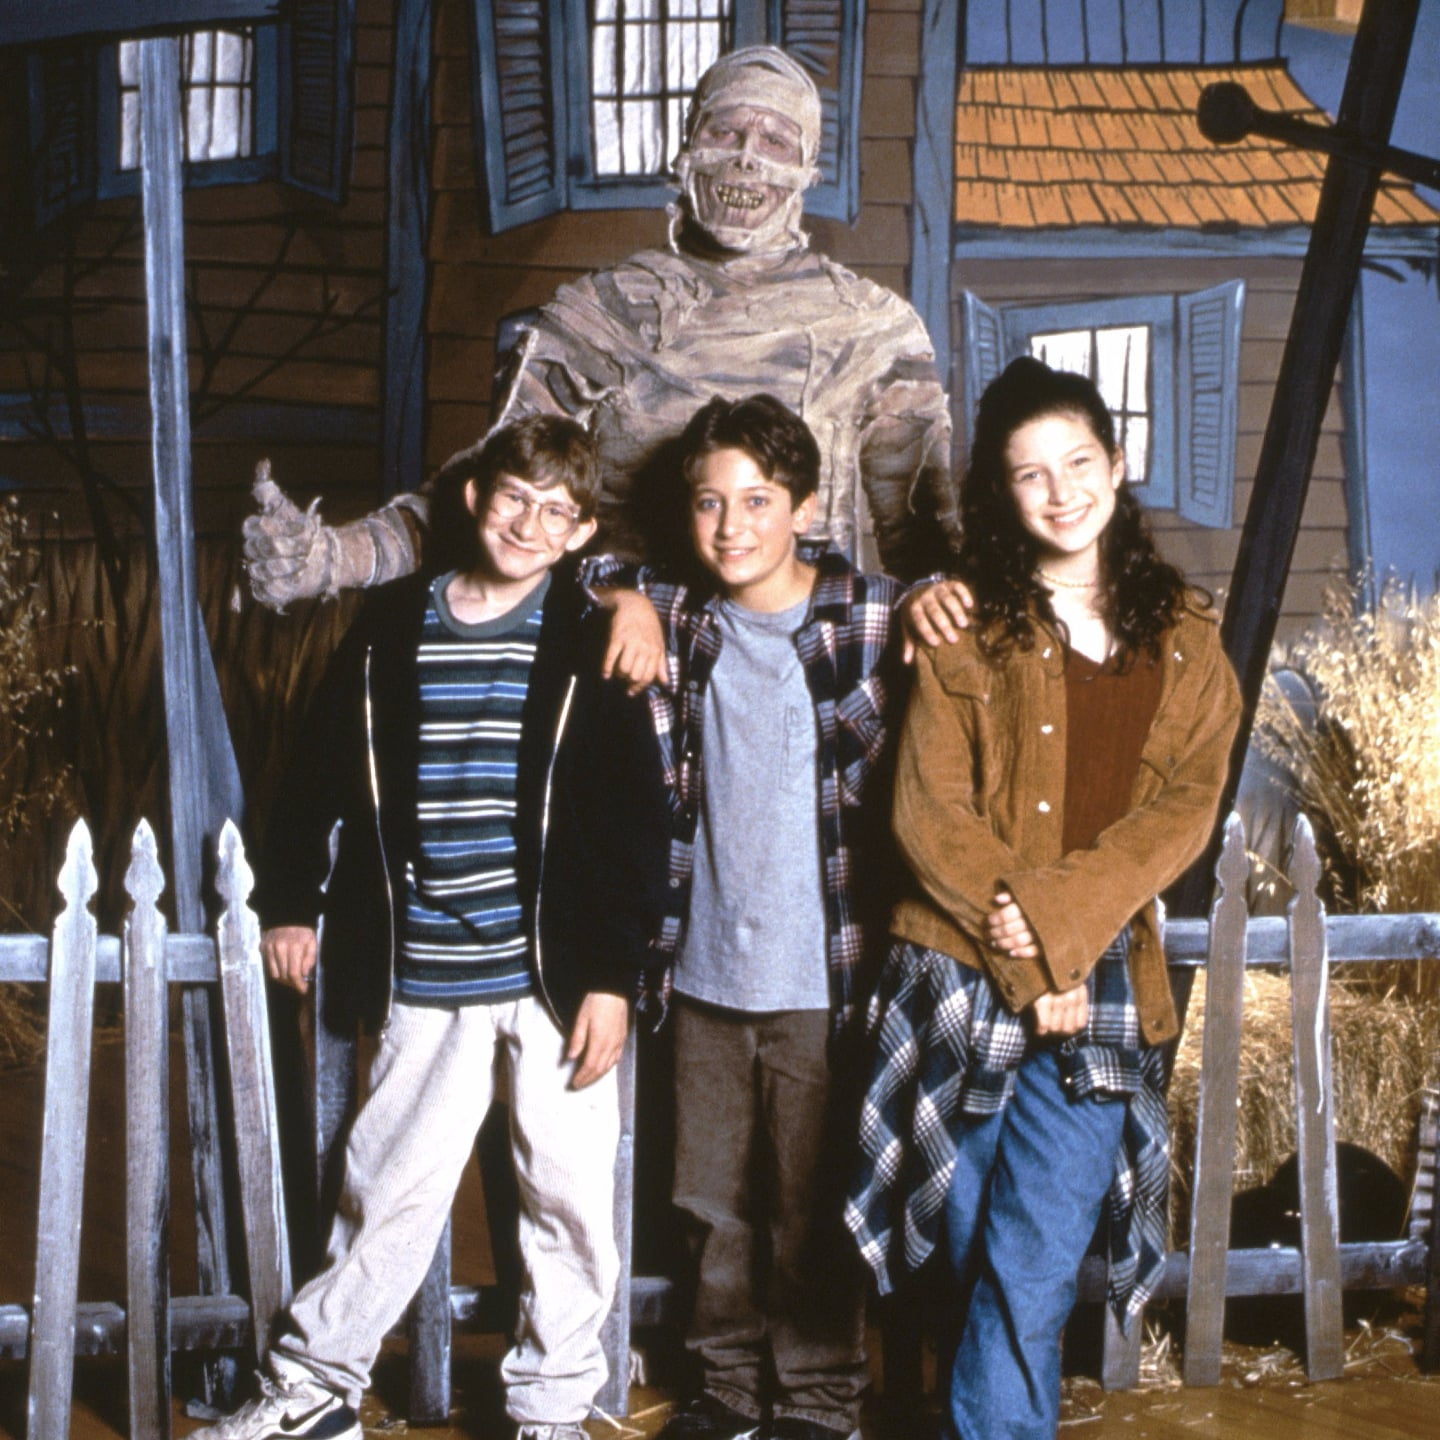 disney channel original halloween movies popsugar entertainment - Halloween Movies For Young Kids